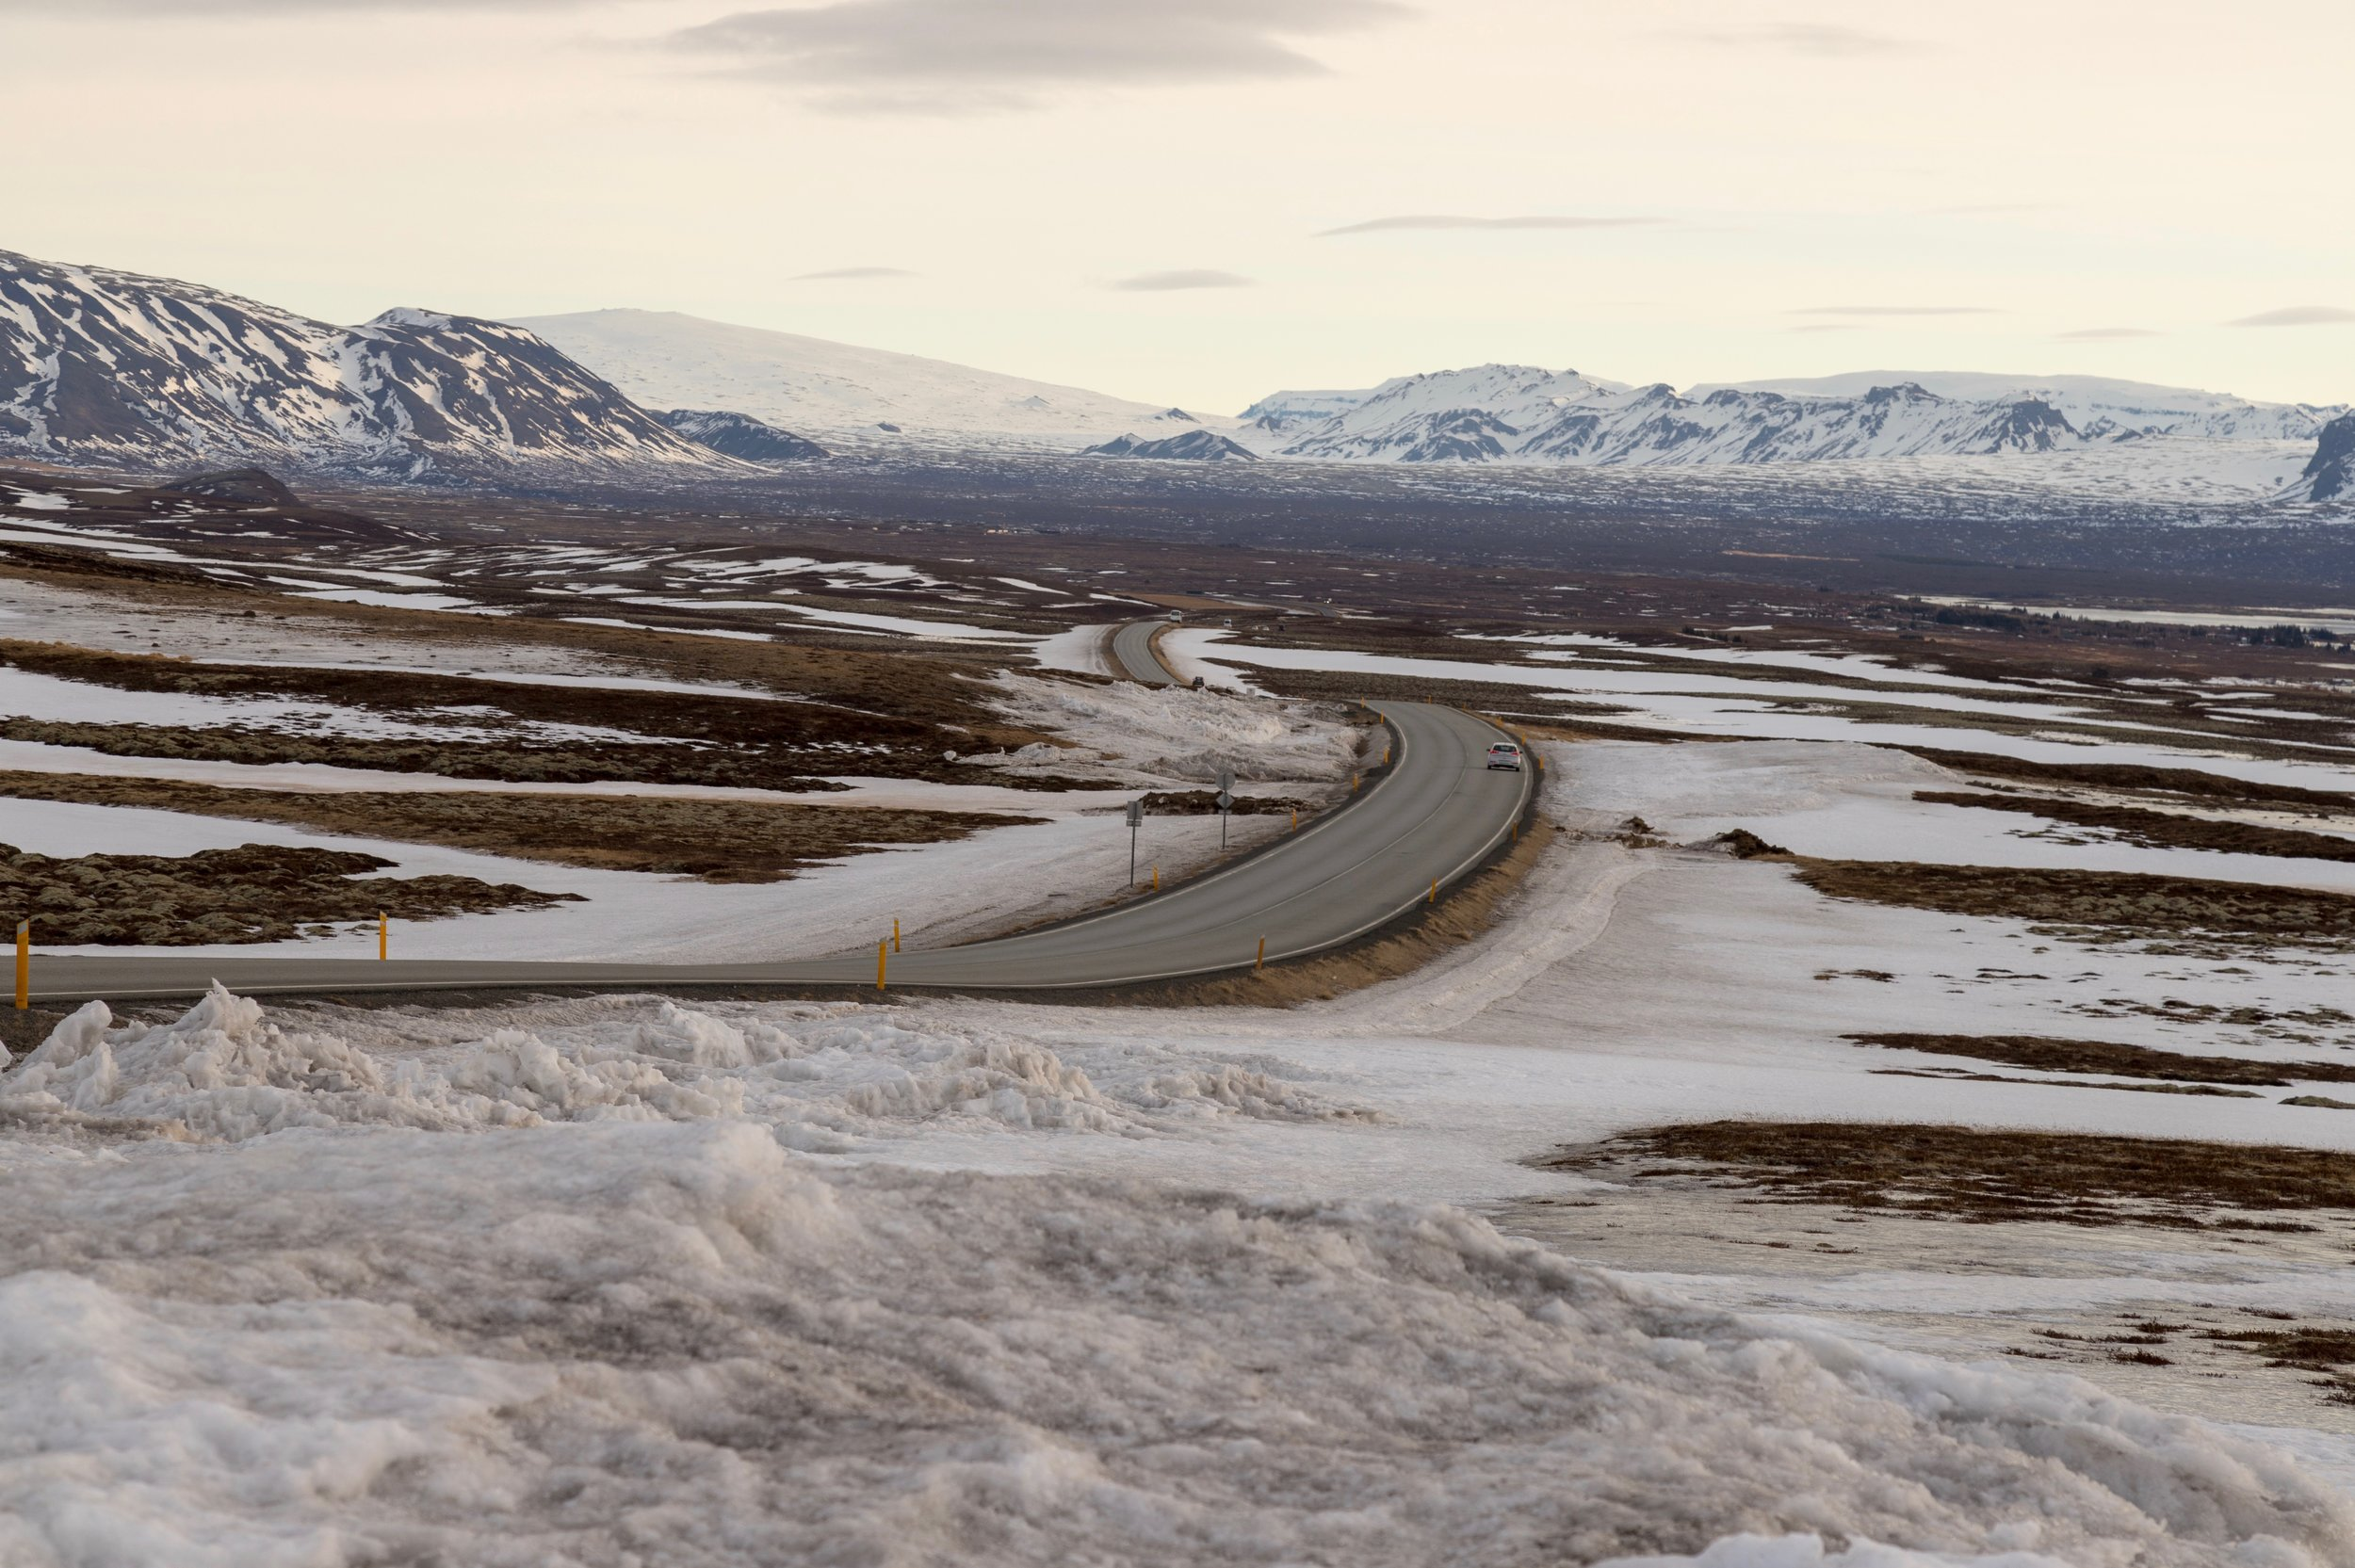 Driving is easy with views like this in Iceland